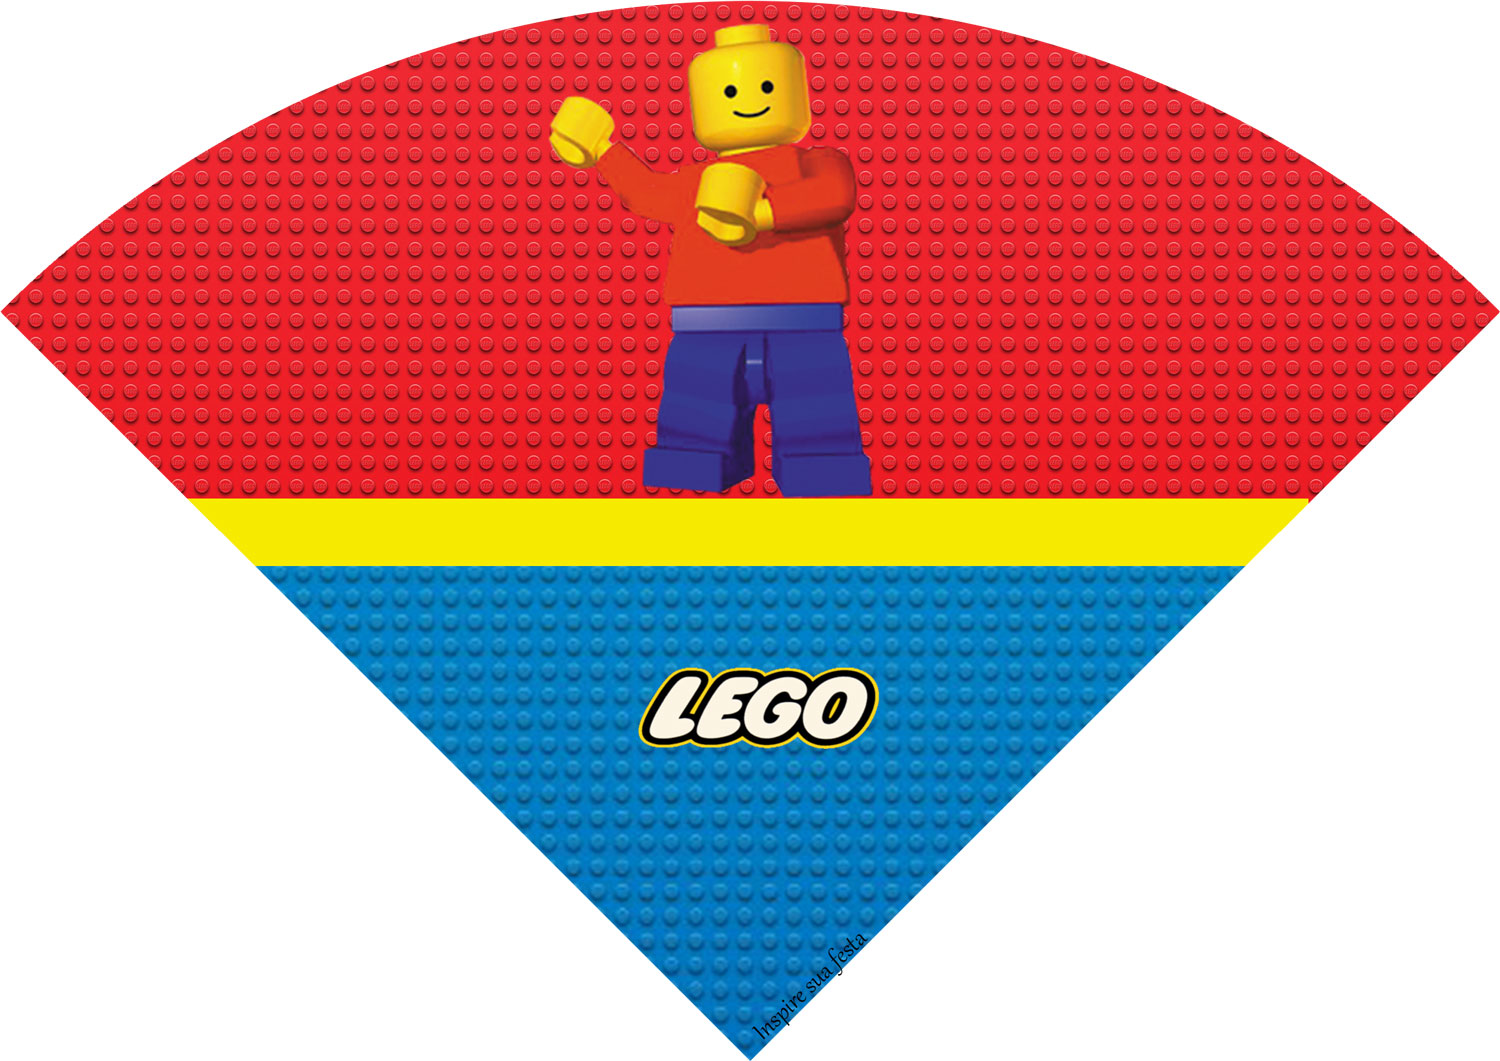 Lego Party: Free Printables Boxes and Free Party Printables. - Oh ...